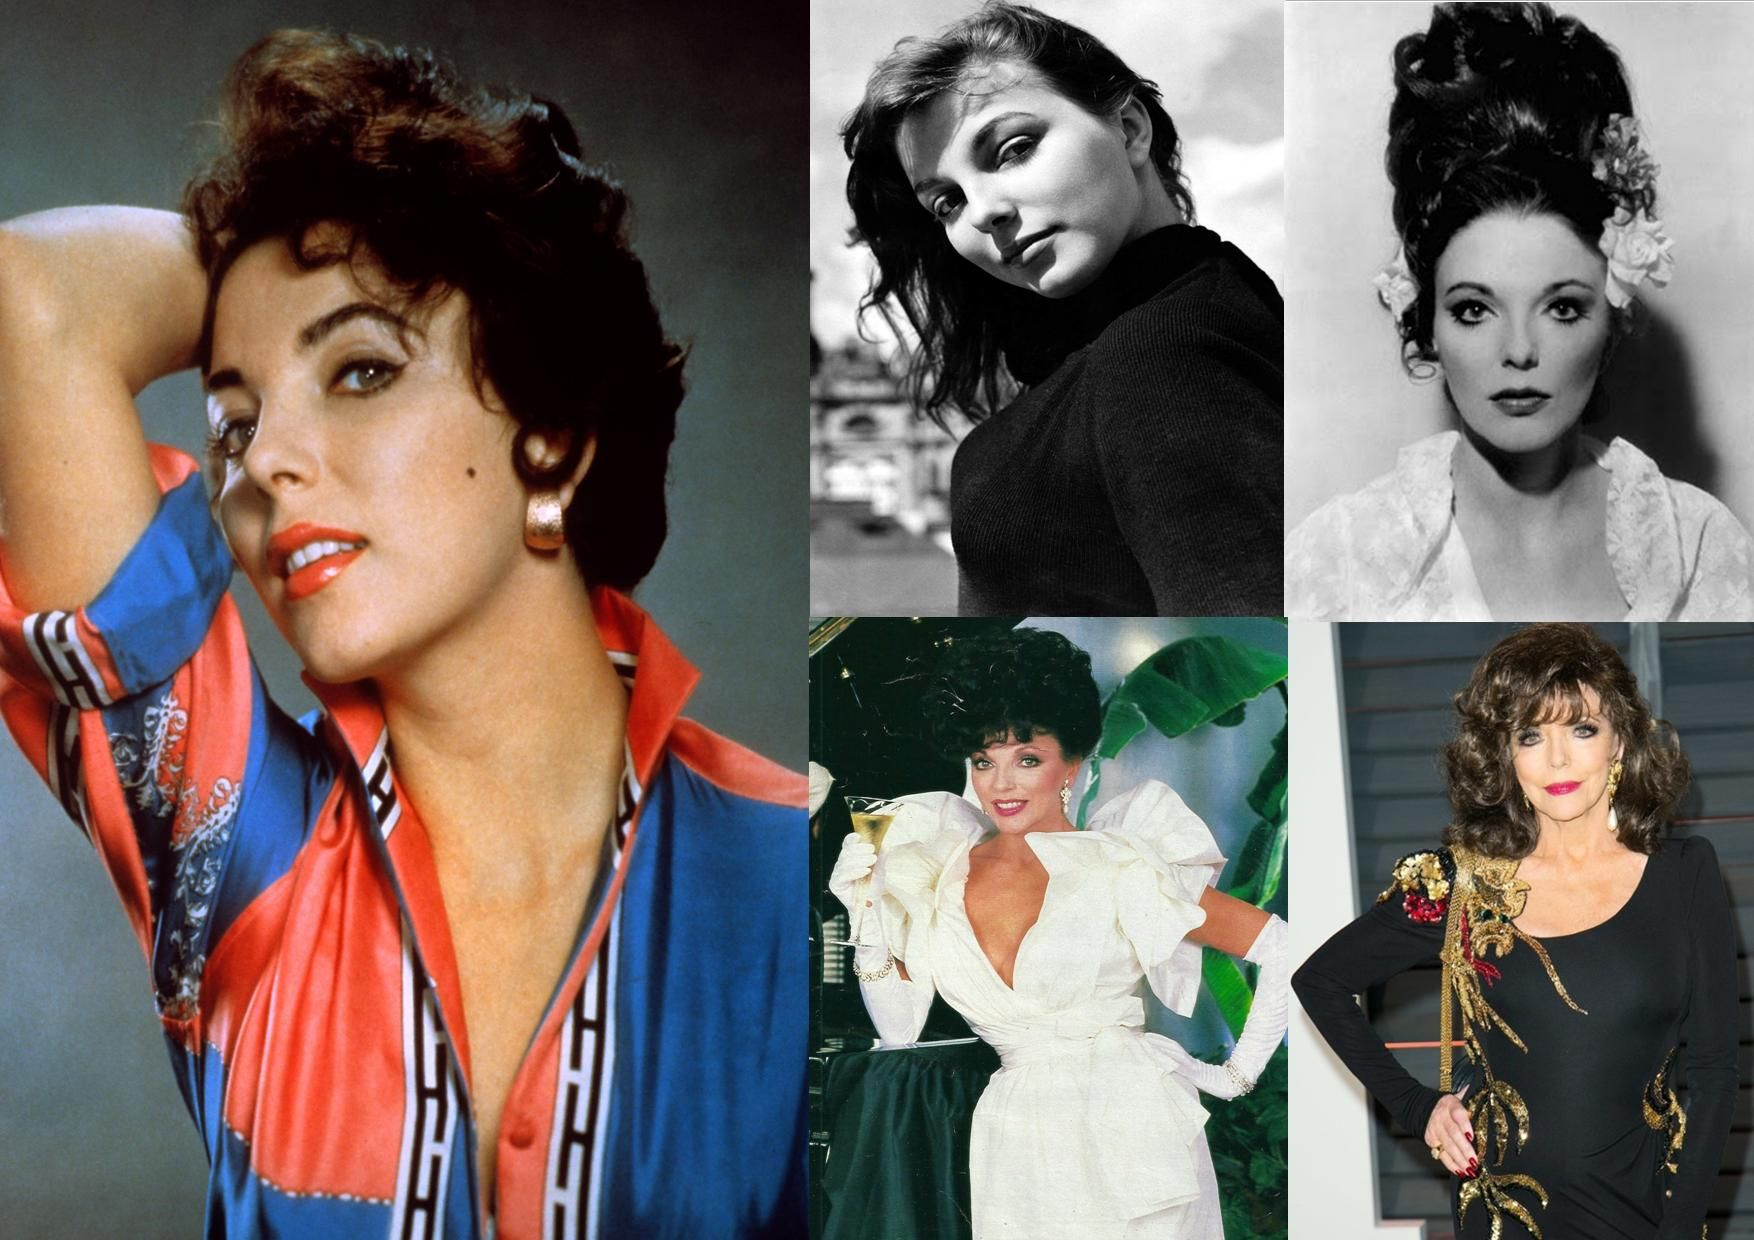 Discussion on this topic: Elena Zareschi, joan-collins-born-1933/